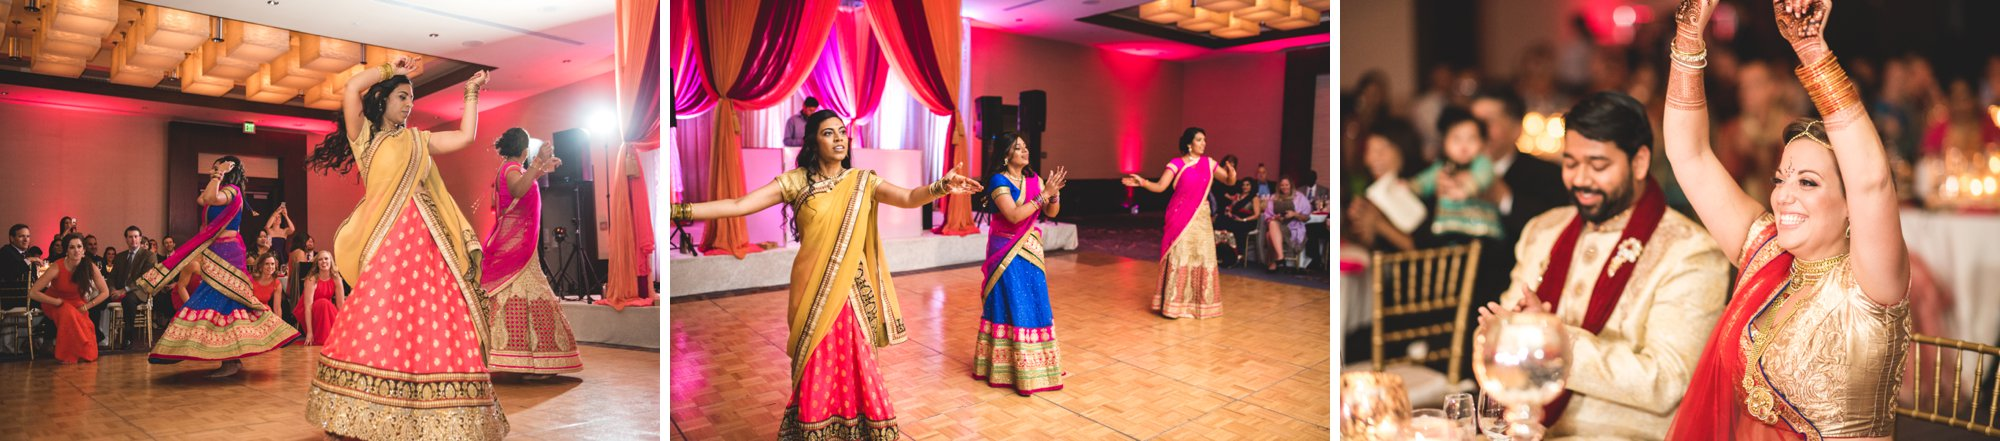 Washington DC colorful Indian wedding with a feminist bride. Traditional dance.